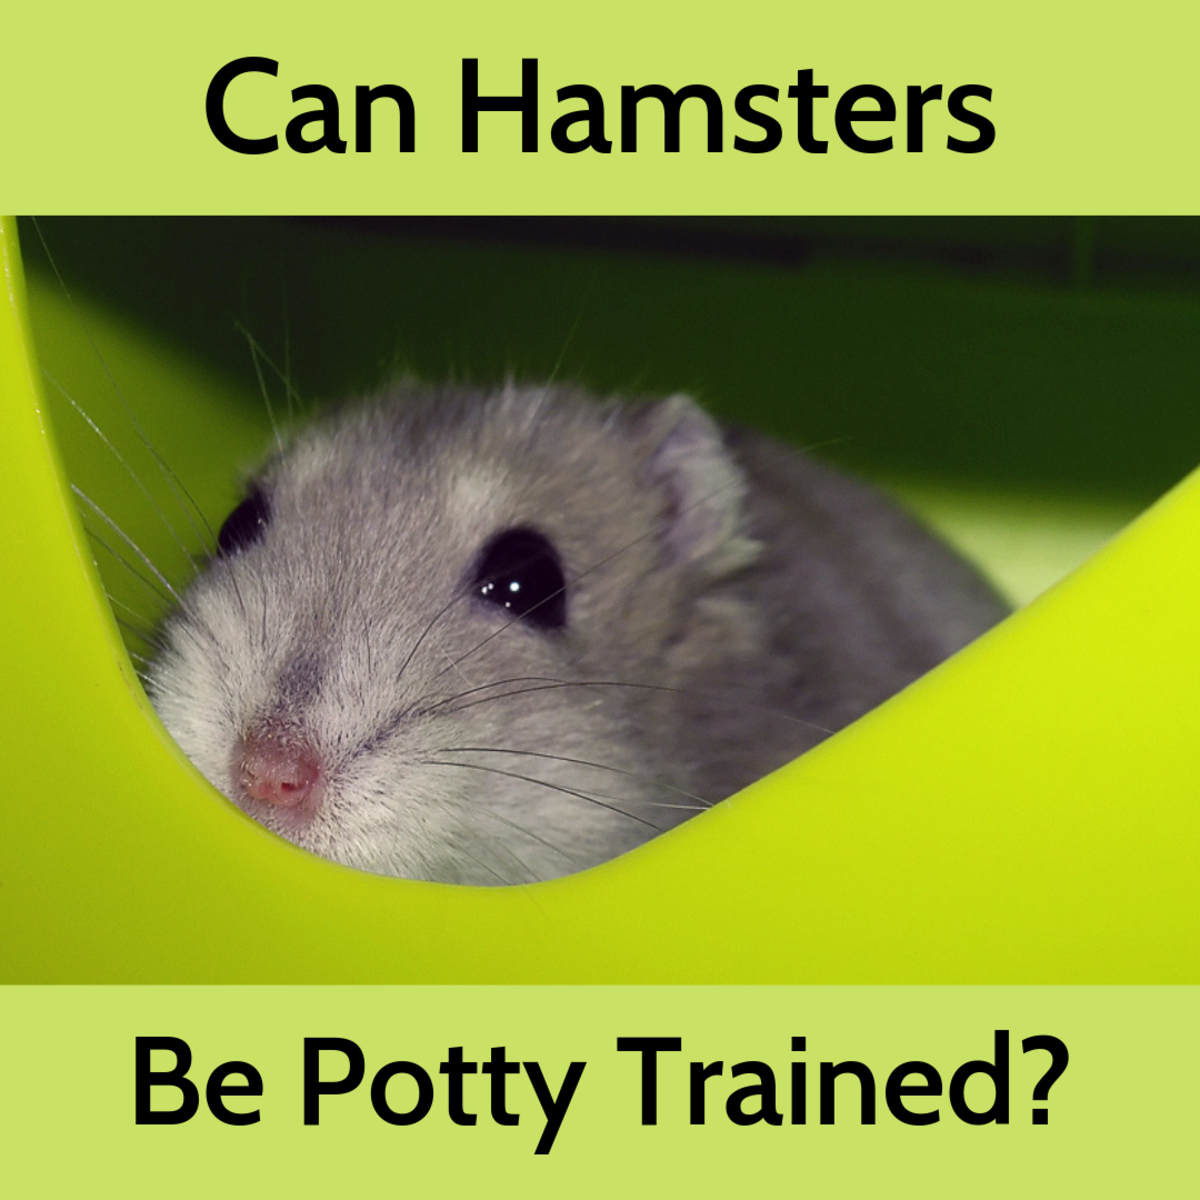 Learn how to train your hamster to use a litter box, and find out what equipment you need.